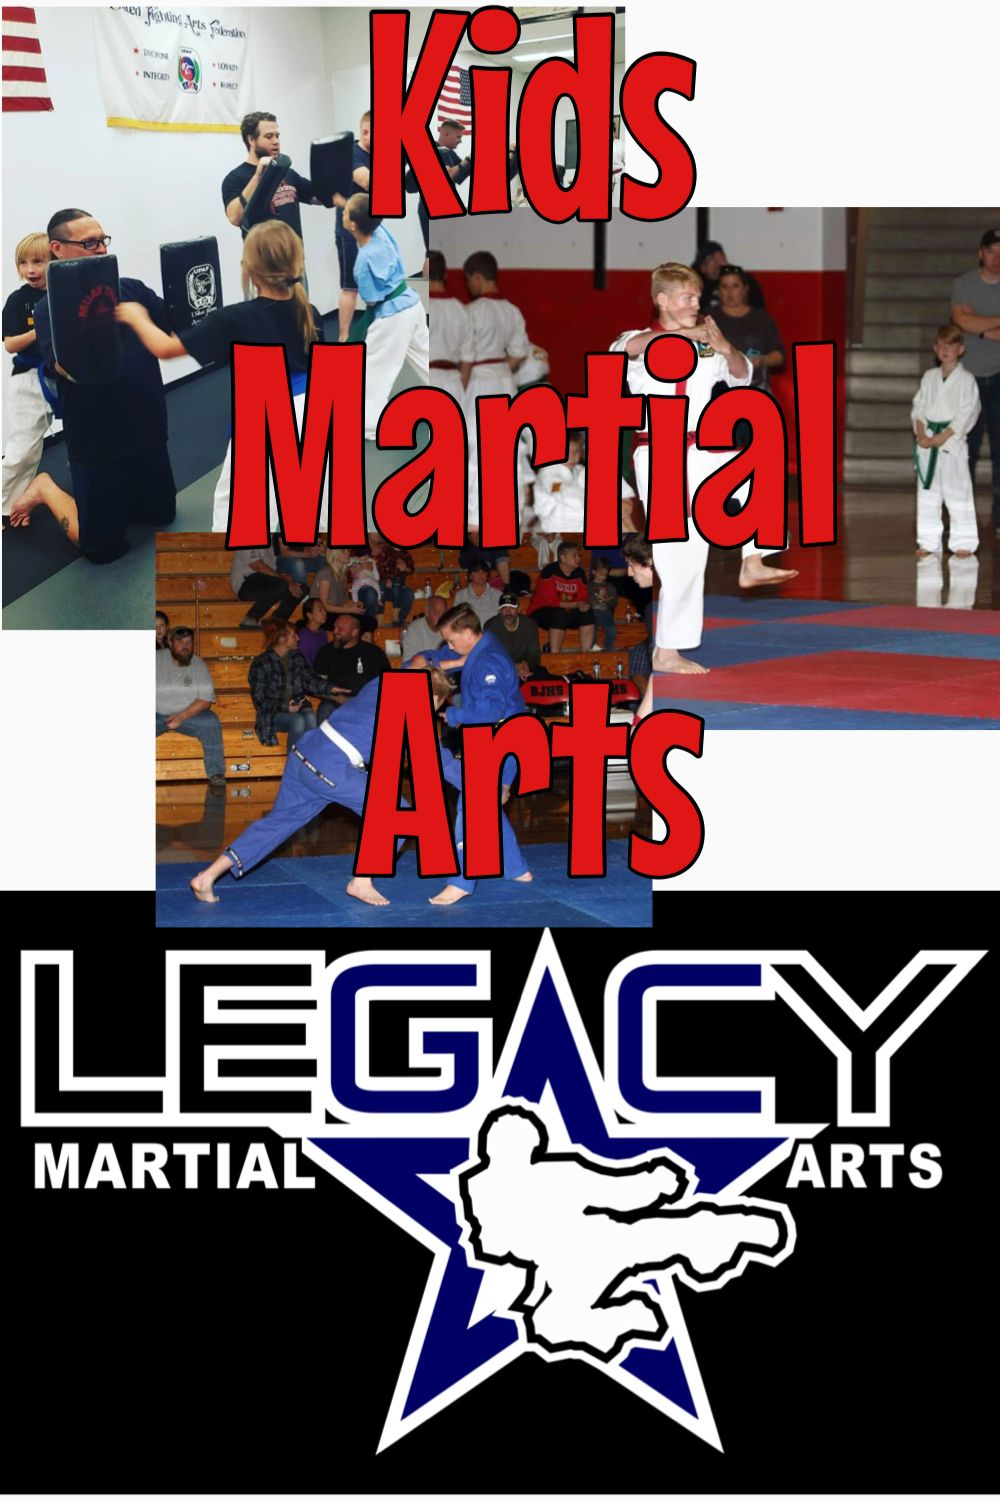 Kids martial arts classes can be extremely crucial in